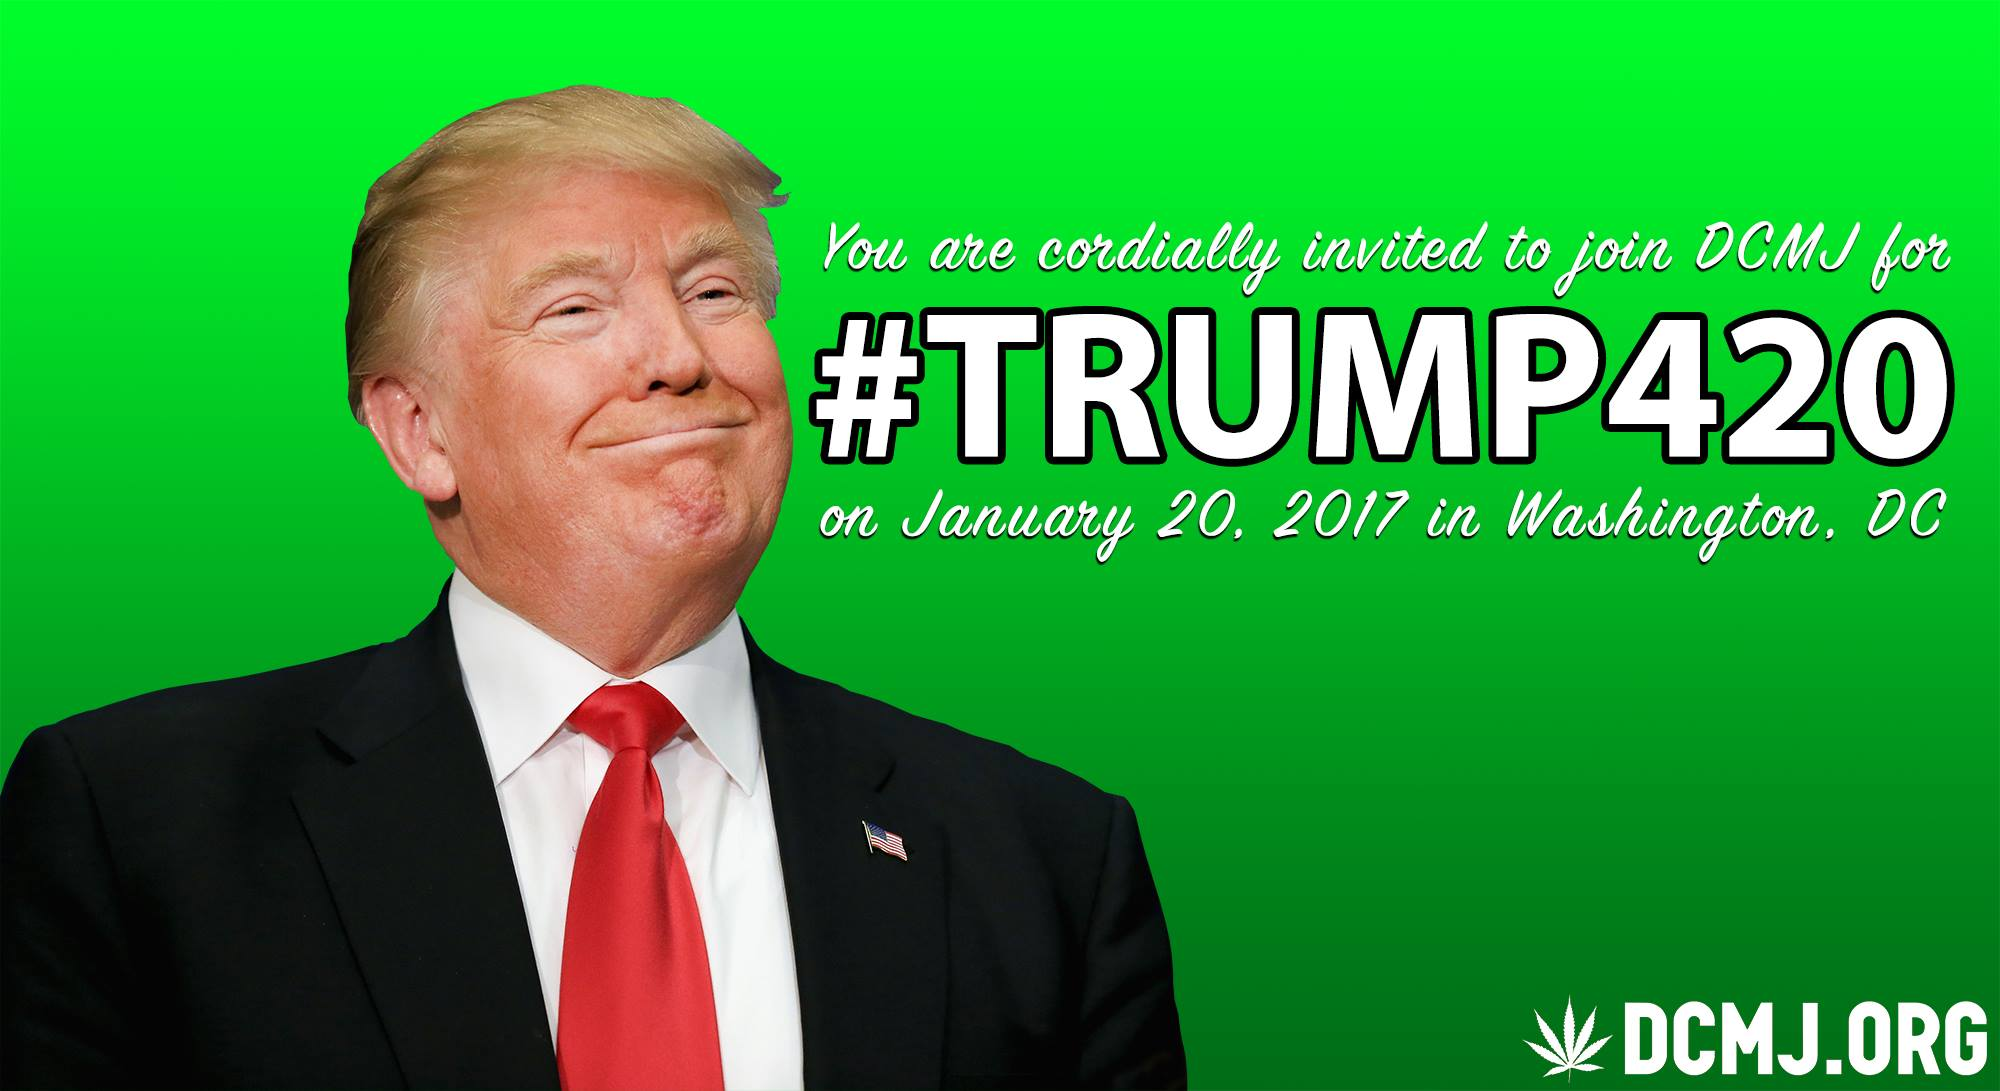 trump420 4,200 Free Joints Will Be Handed Out At Trumps Inauguration